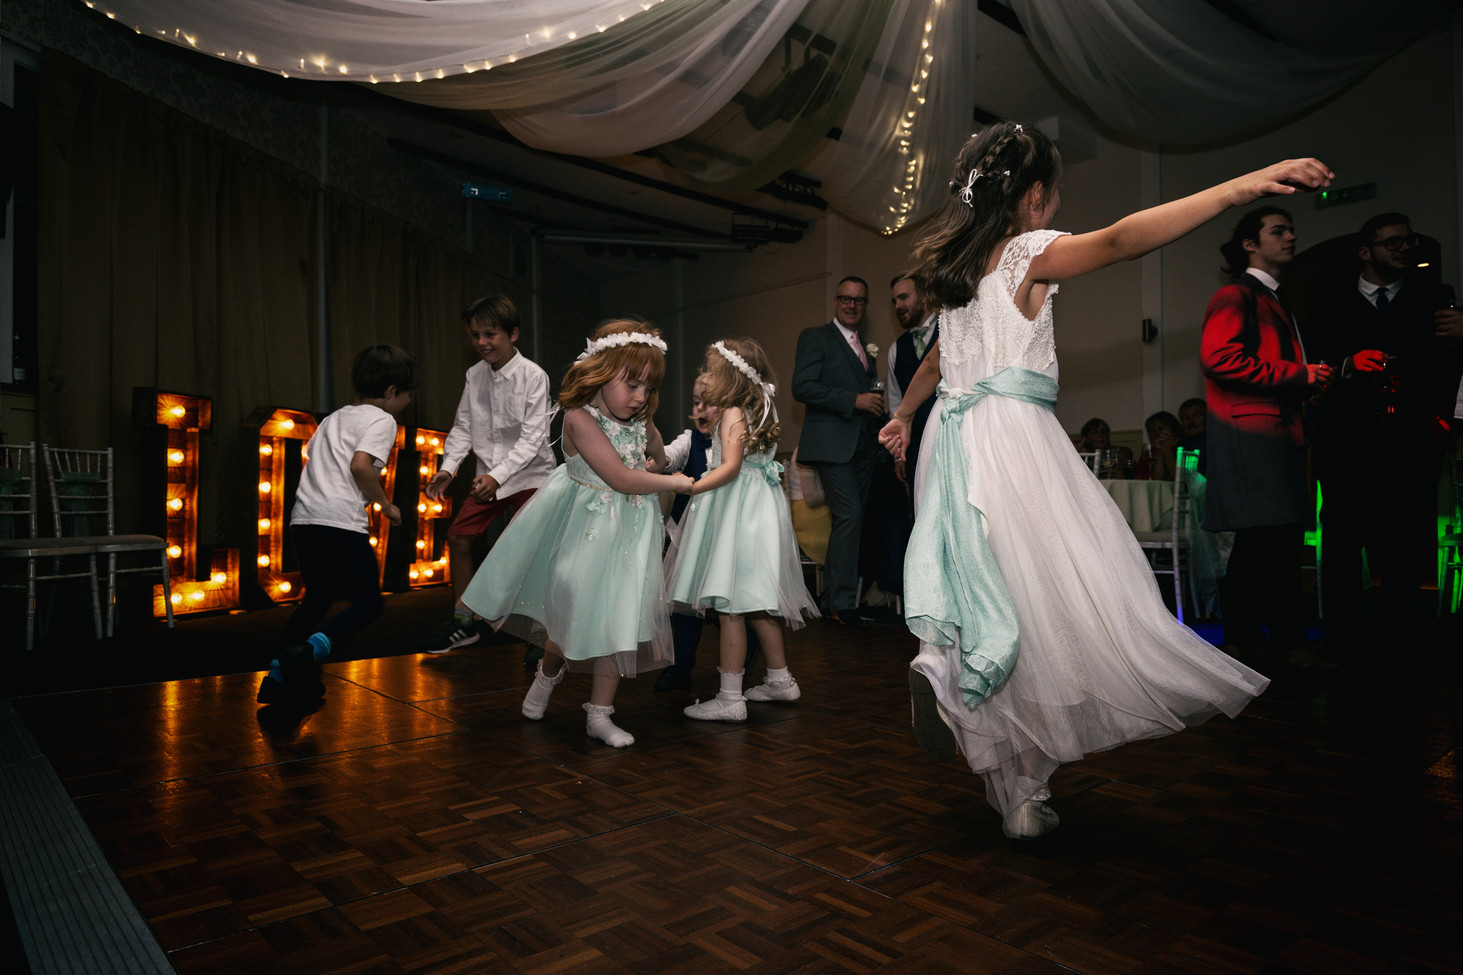 Flower girl daning on the dance floor with a vintage look.